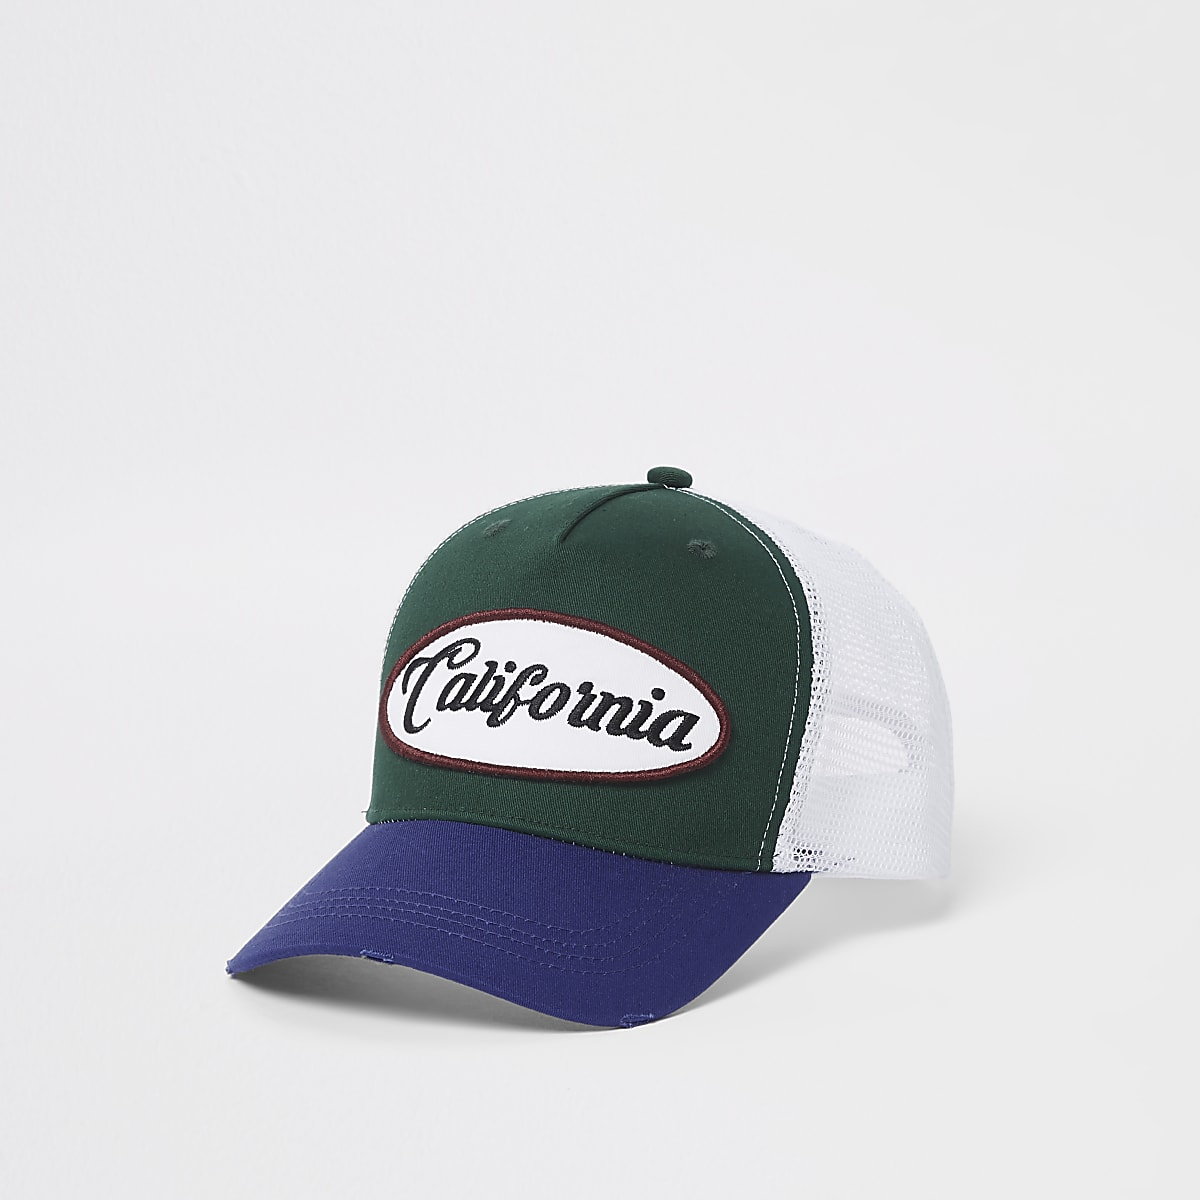 Green California mesh baseball cap